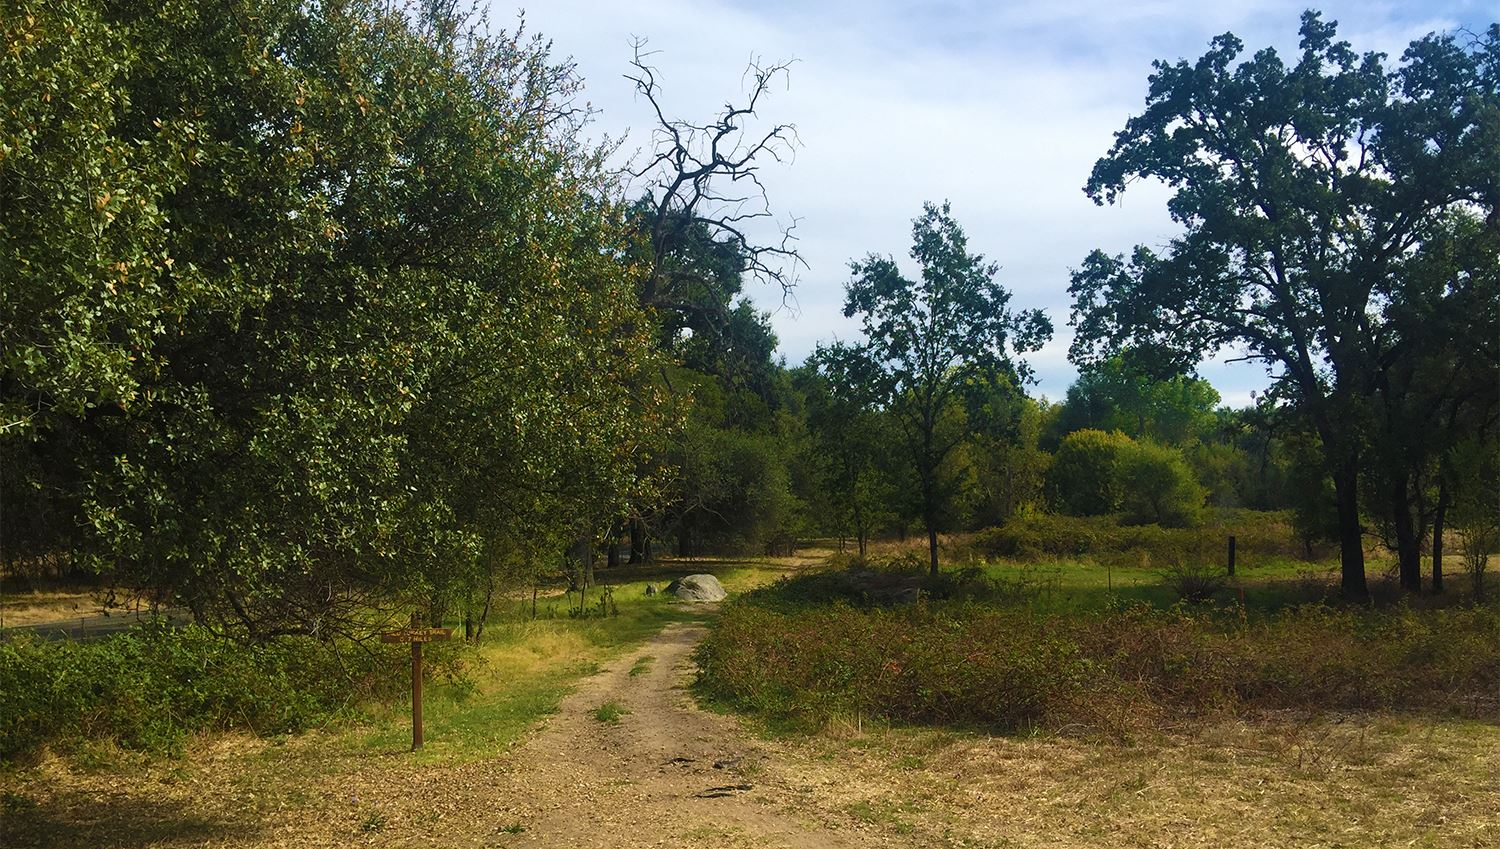 Photograph of dirt trail path and foliage at Traylor Ranch